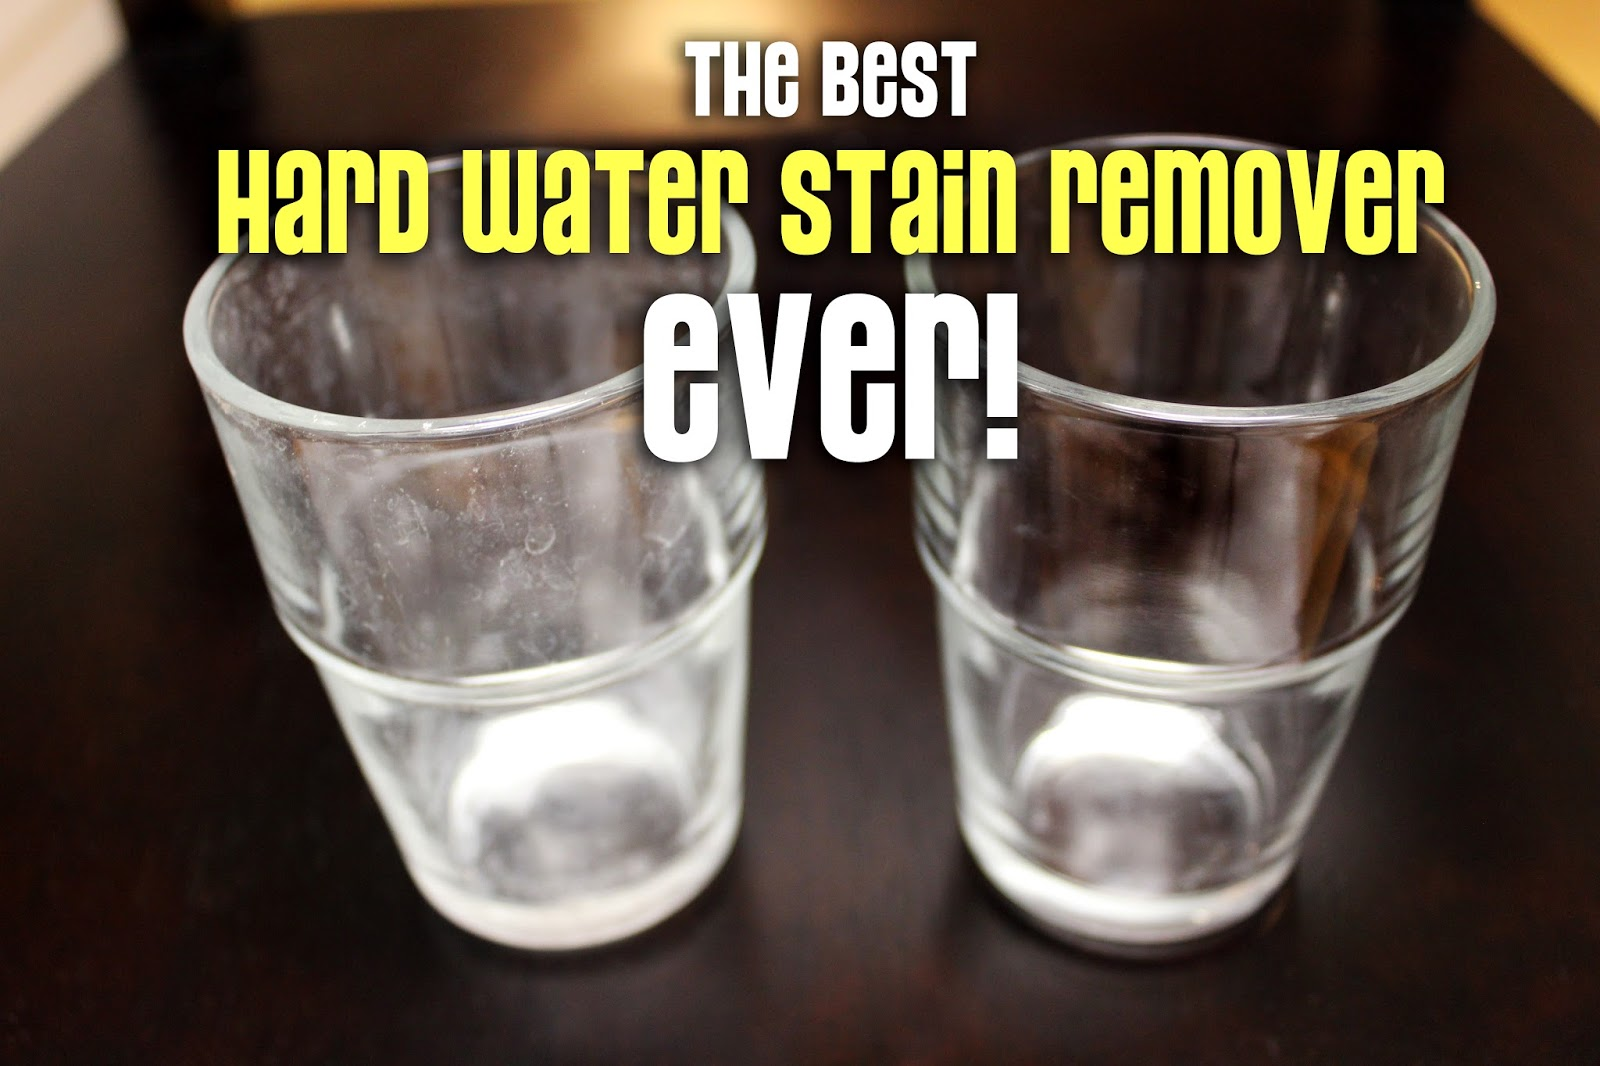 The Best Hard Water Stain Remover Lou Lou Girls